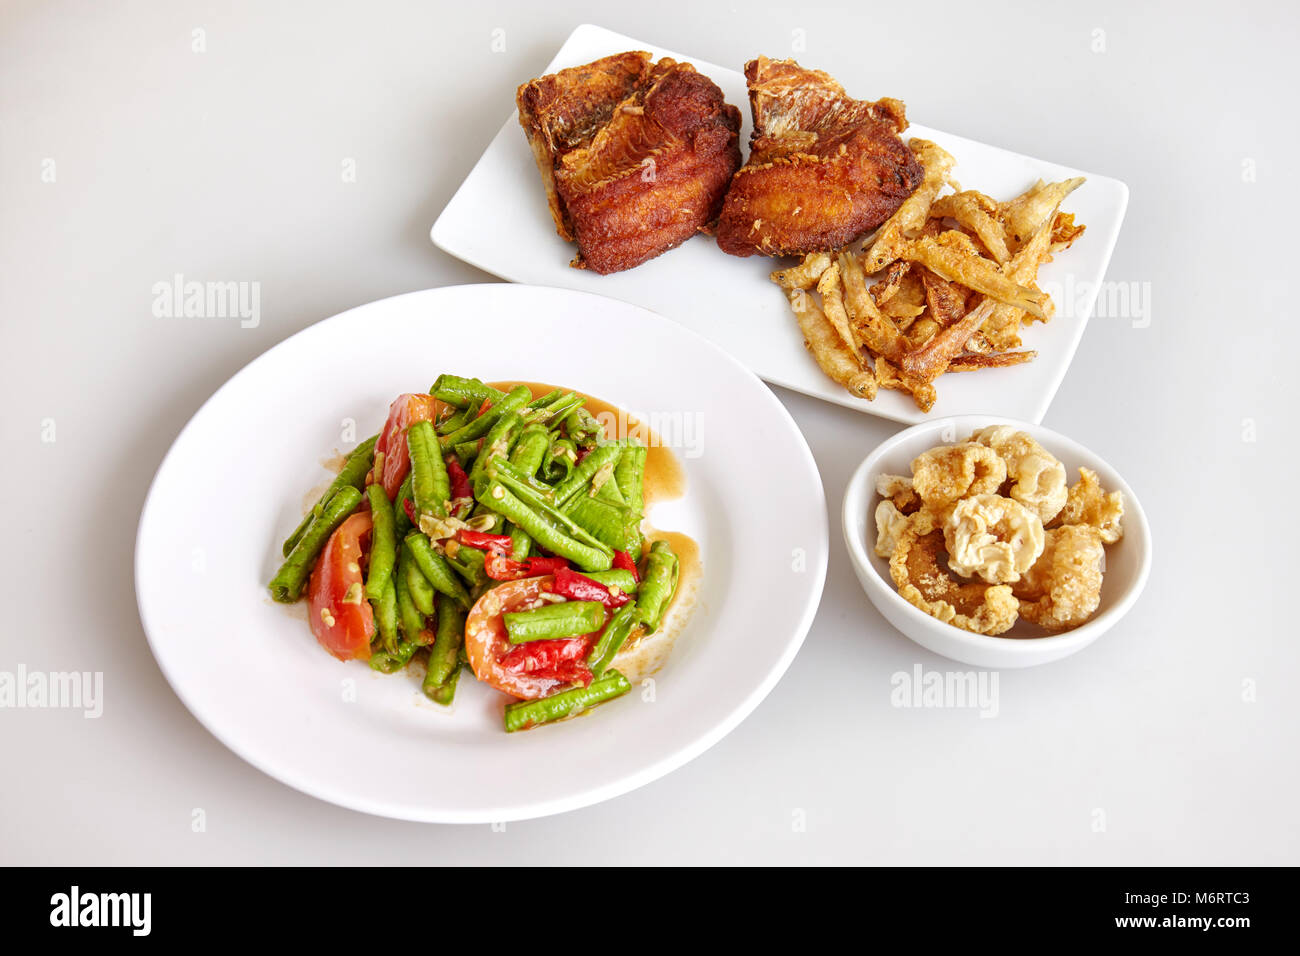 Thai traditional food, local food, long beans spicy salad (cow pea), Crispy pork skin and crisp tilapia fish fried - Stock Image